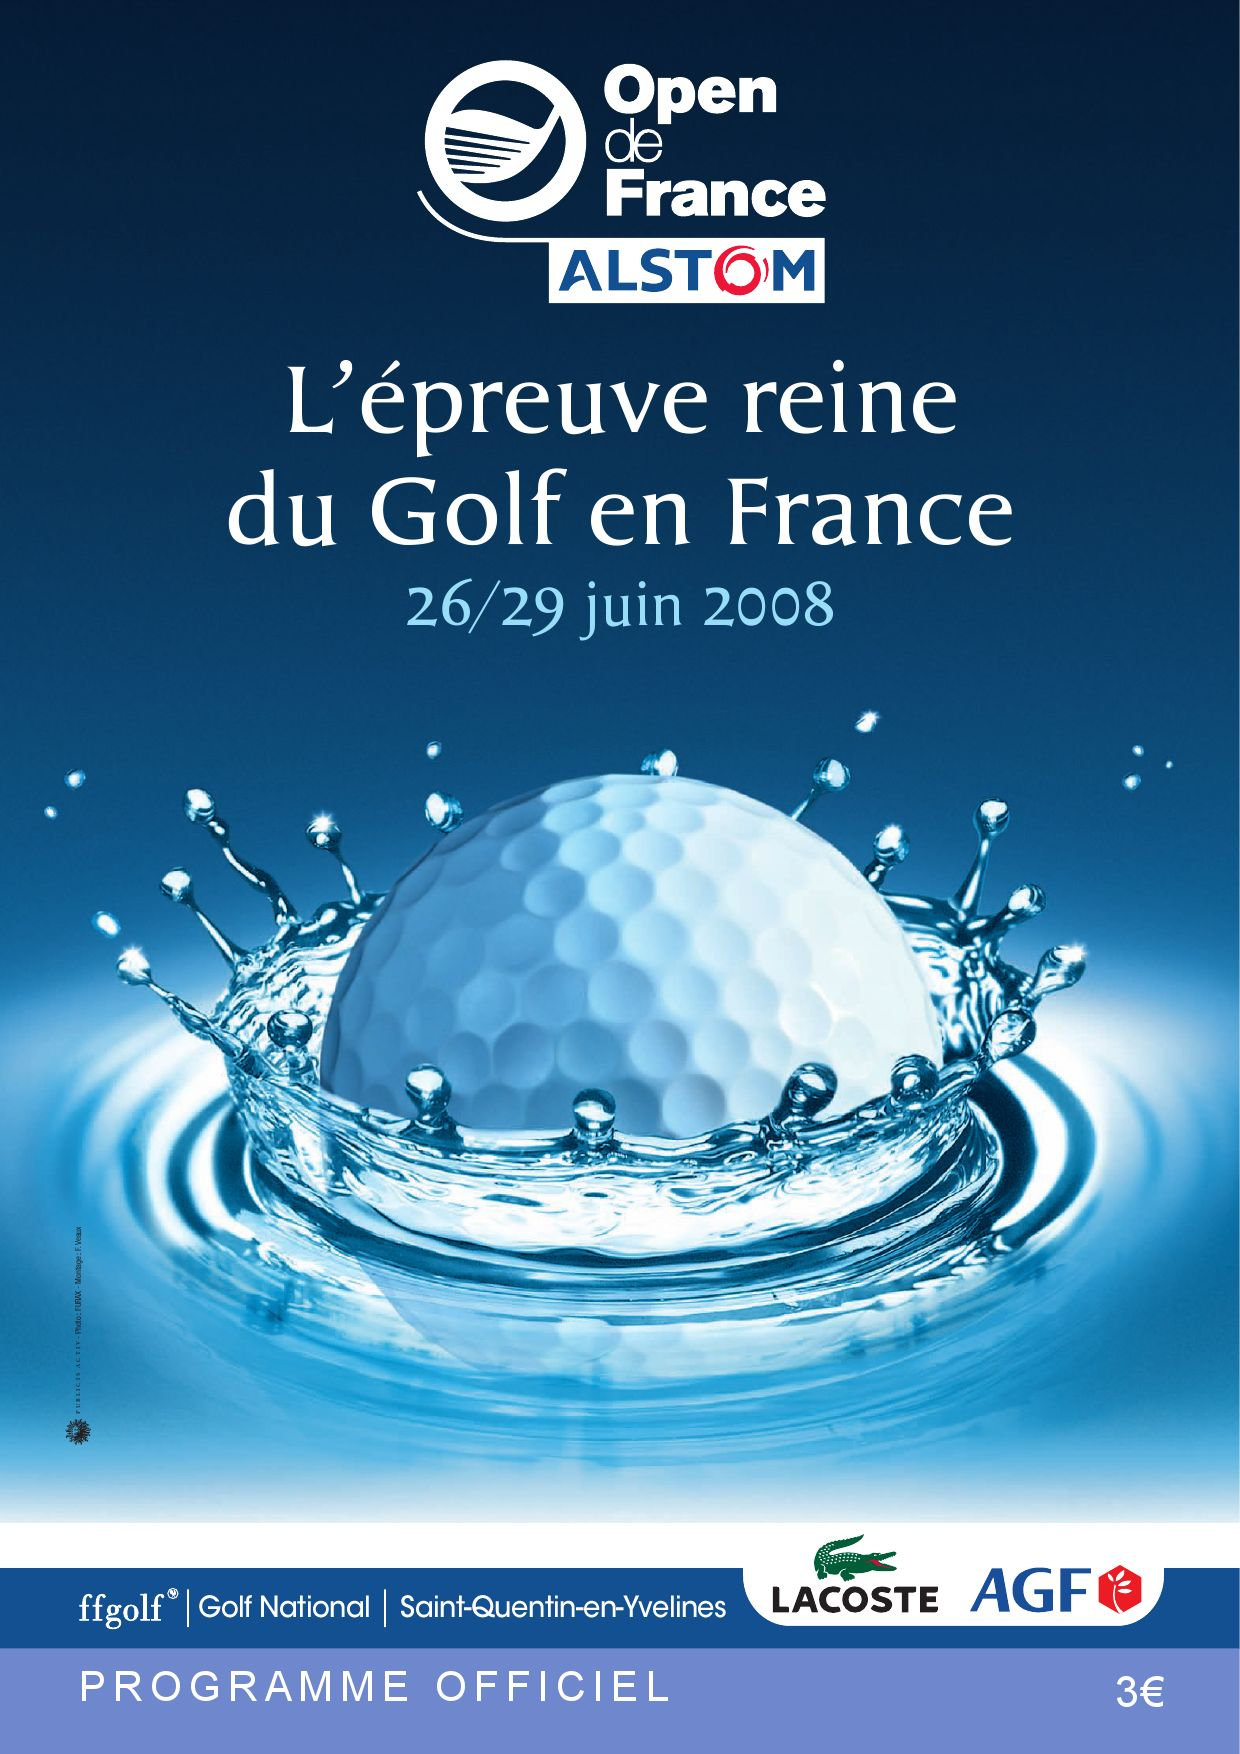 France Global De Open By Wsp Issuu I7Yfgb6yvm